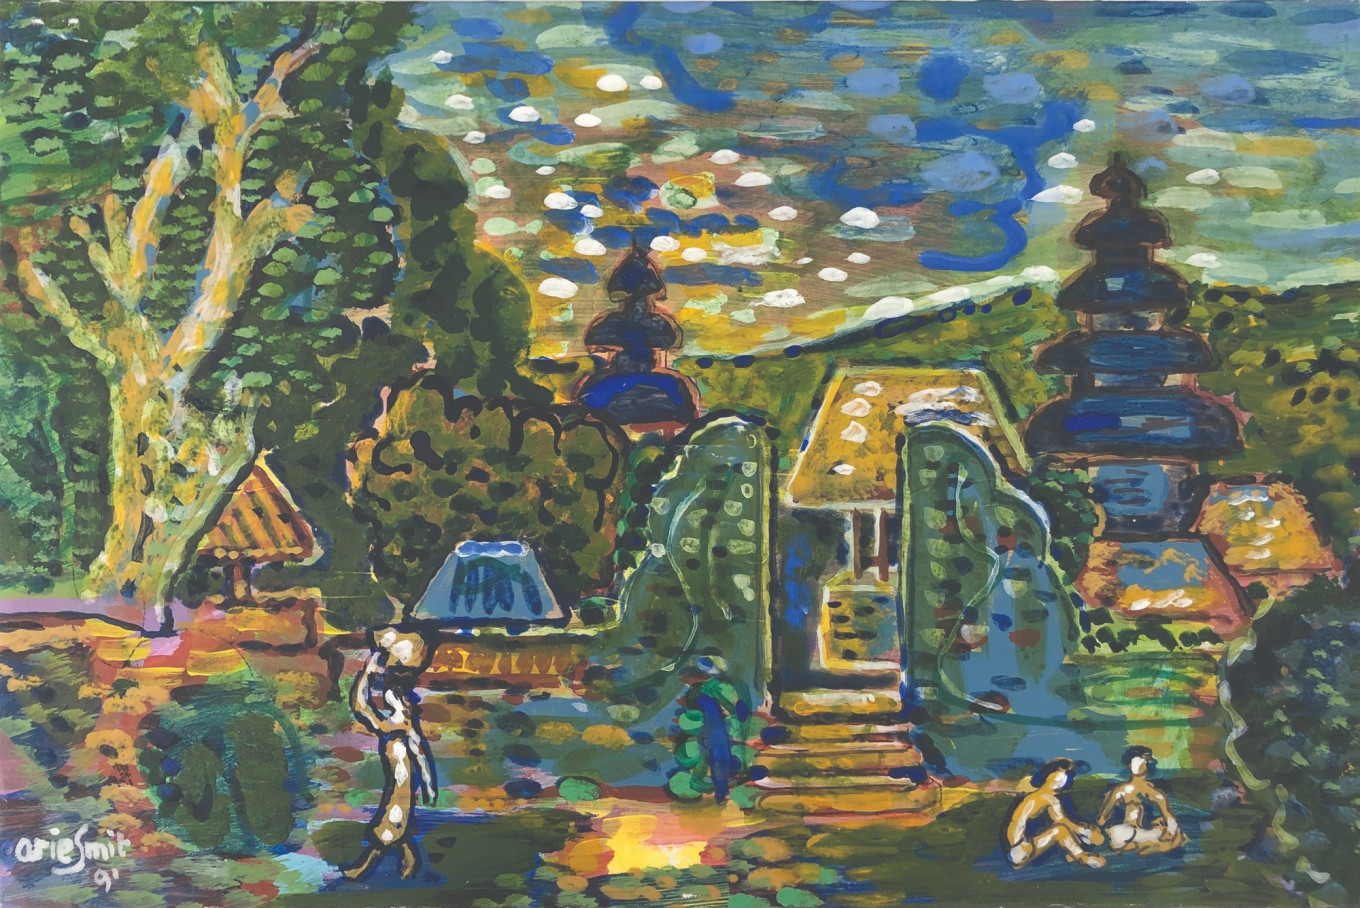 Lot 823 'Balinese Village' (1991) by Arie Smit, mixed media on paper glued on board, 26 x 38 cm